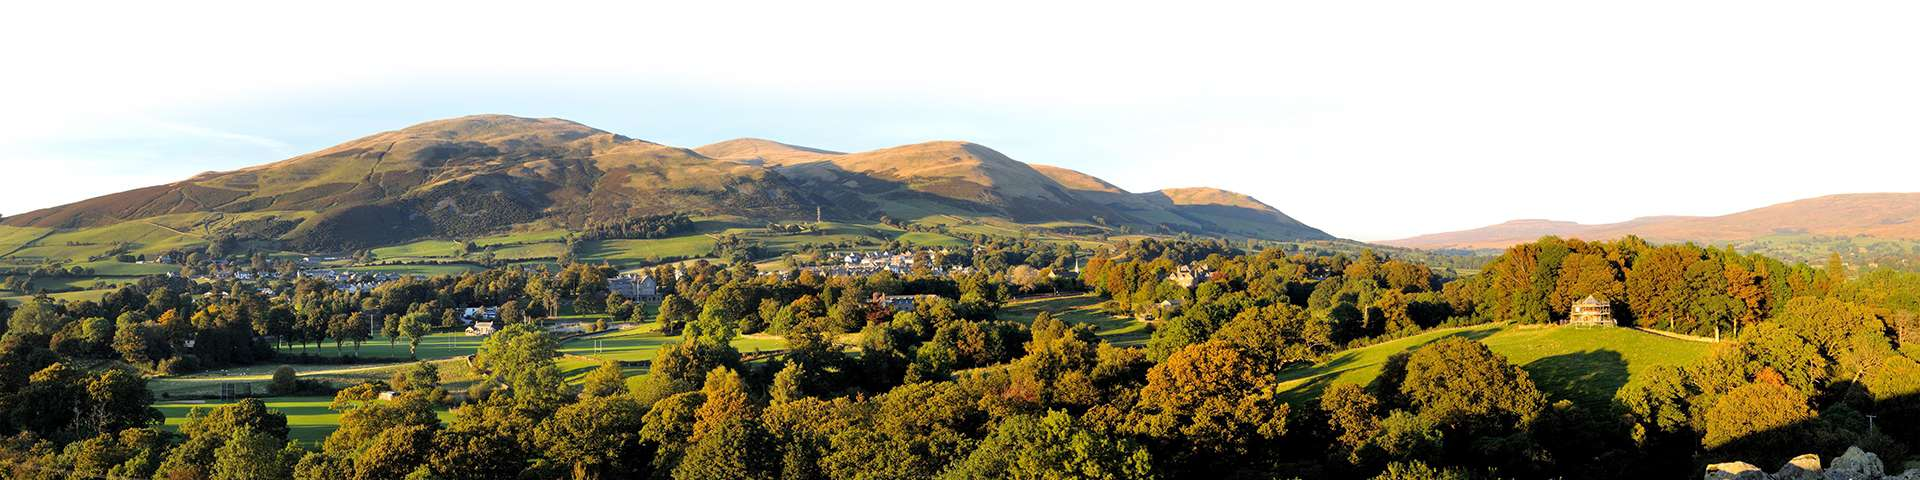 Sedbergh Senior School - Panoramic View